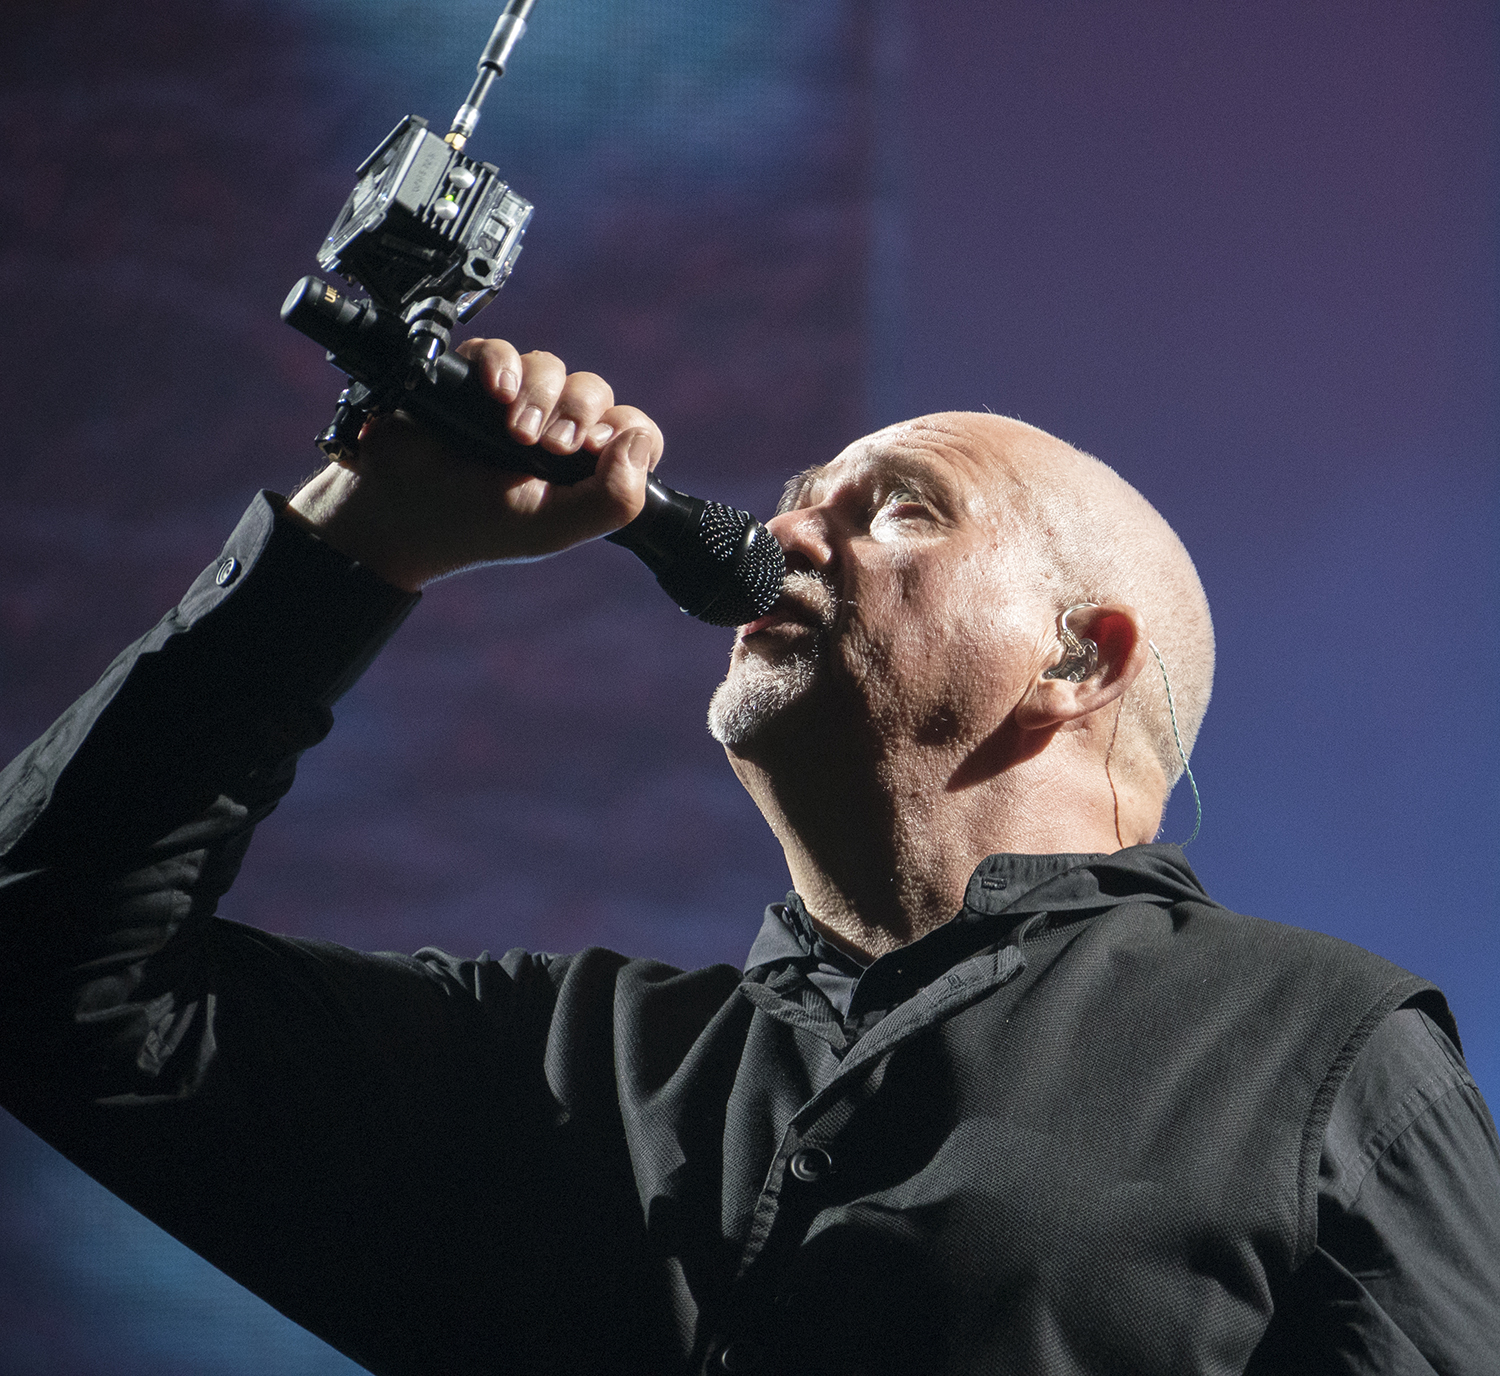 Peter Gabriel at DCU Center in Worcester, Massachusetts July 2, 2016